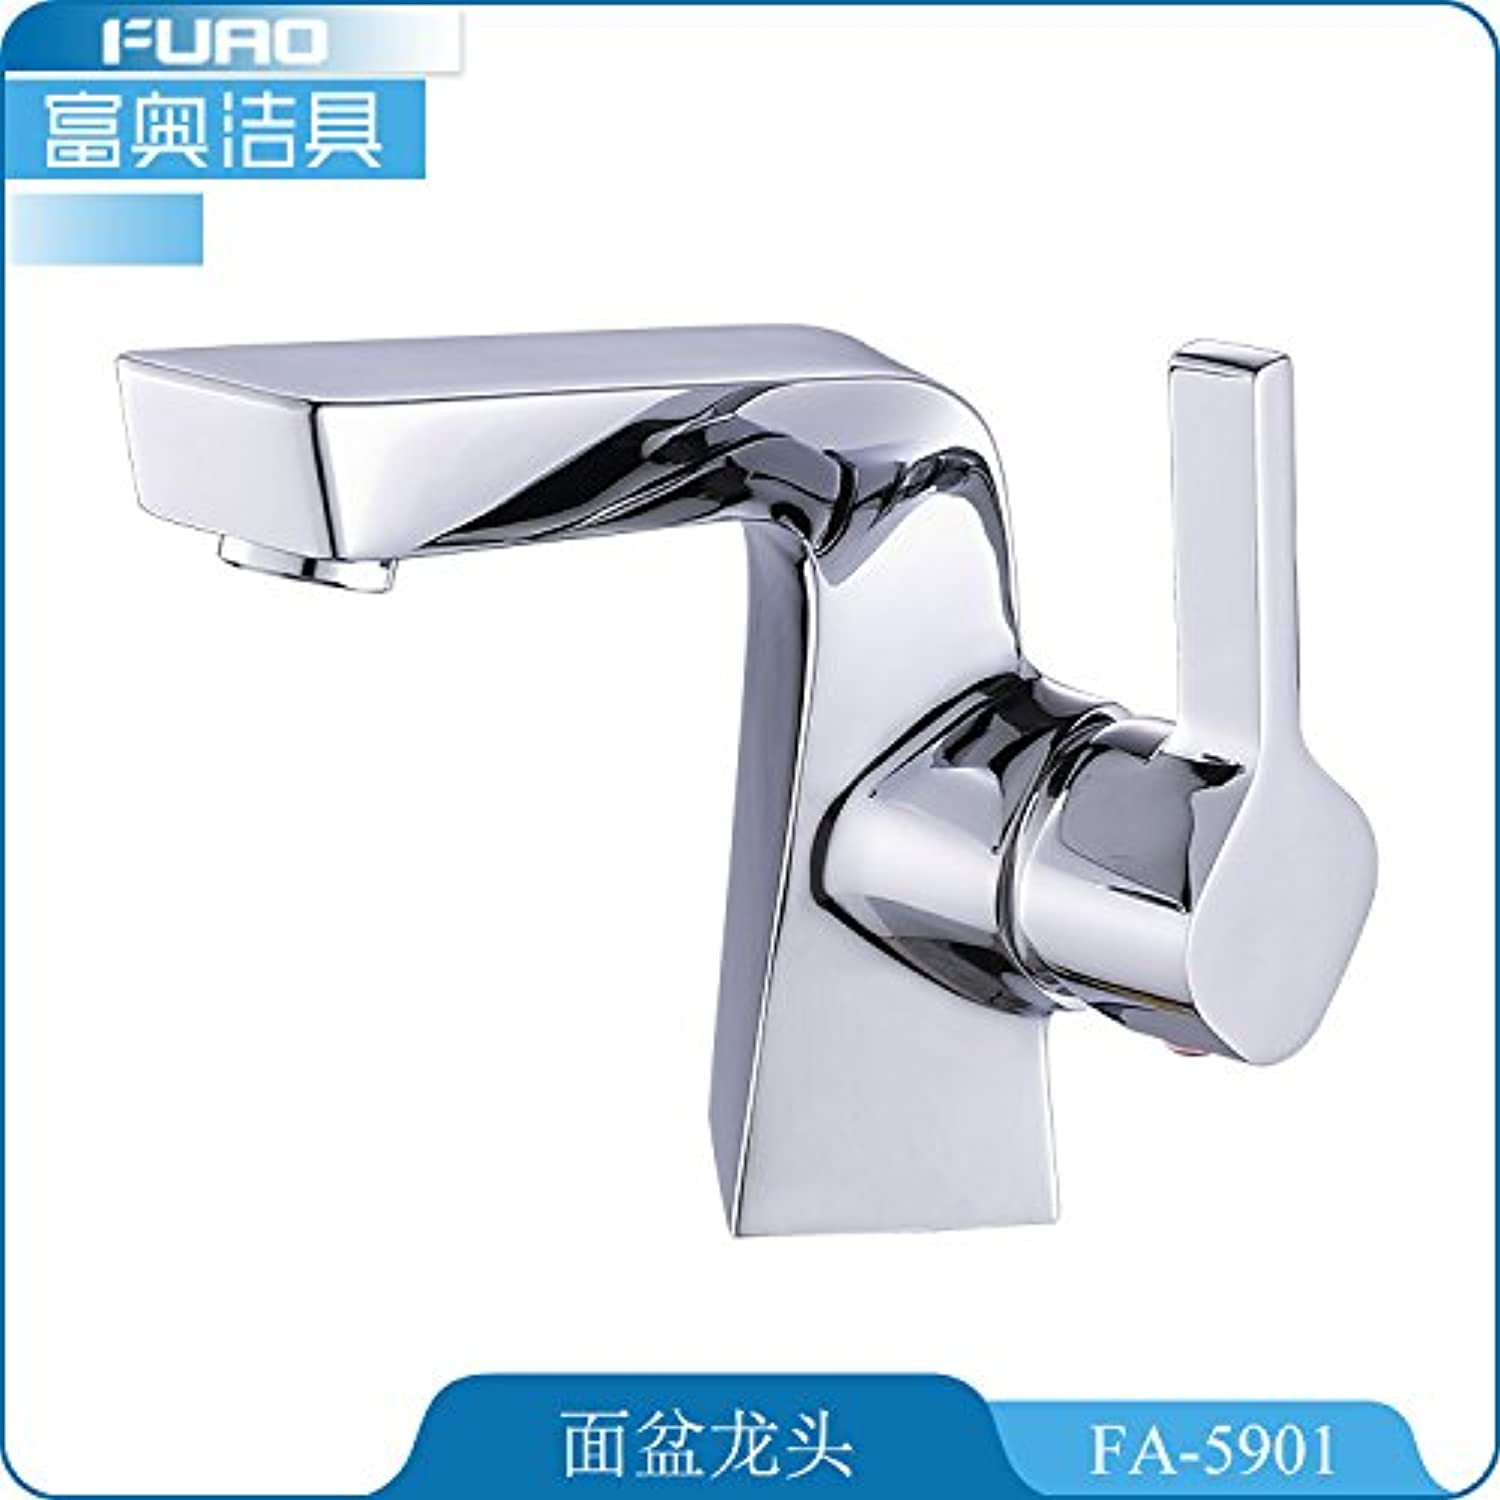 Ddlli Bath Faucets for for for Kitchen Sink Faucet Shower F6 Hot and Cold Bathroom Basin Tap Hot and Cold Basin Taps Basin Tap 46a7cc